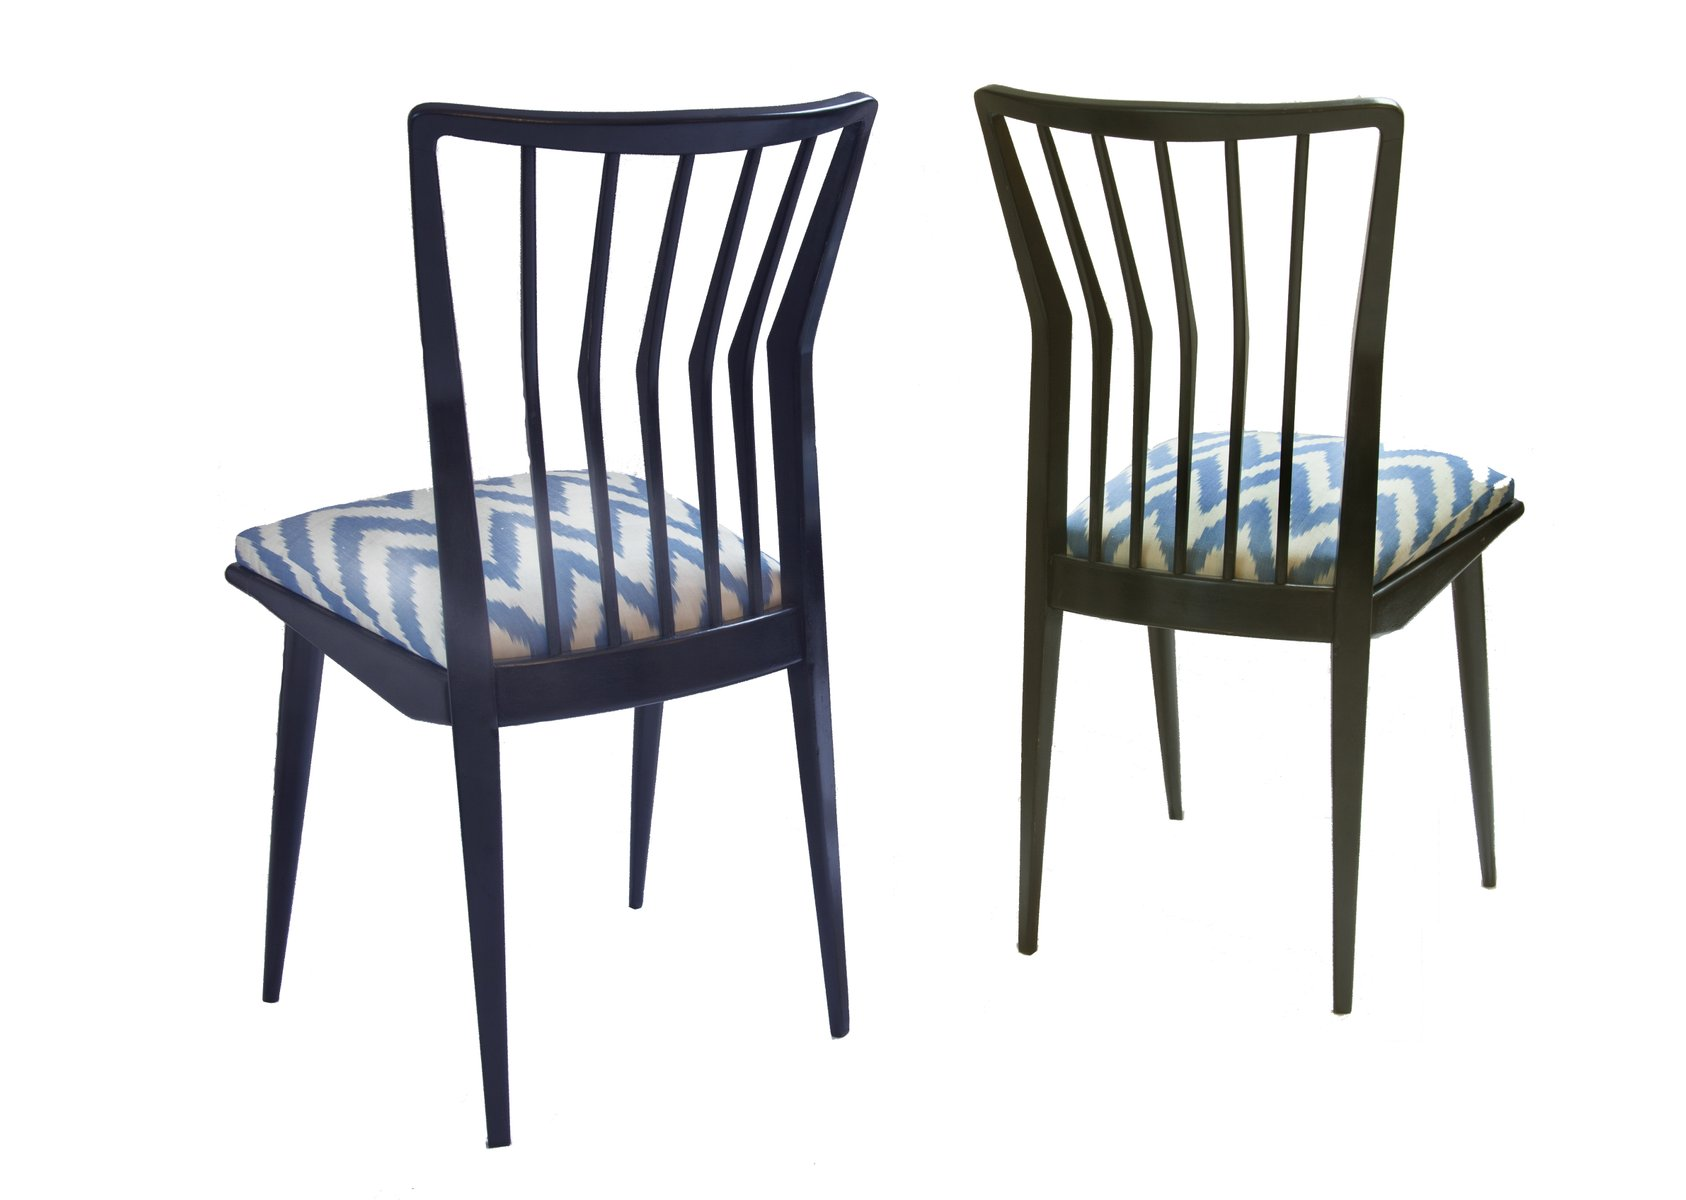 Dining chairs by maurizio tempestini 1939 set of 6 for for Set of 6 dining chairs